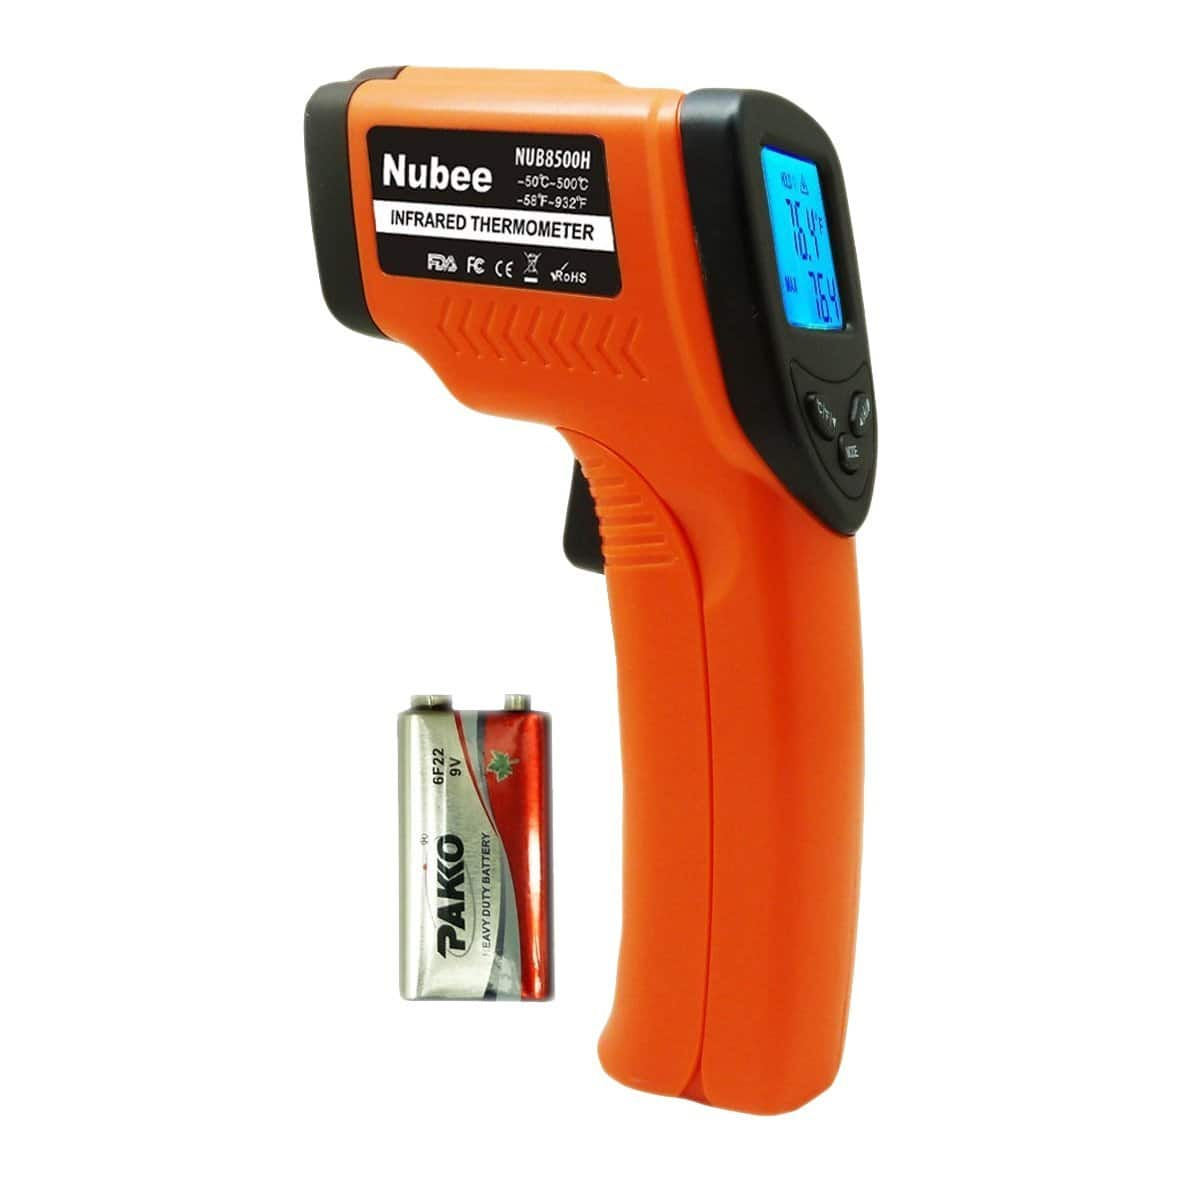 Nubee Non-Contact Infrared Thermometer Digital Temperature Gun w/ Laser Sight (NUB-8500H) for $11.88 AC + FSSS or FS w/ Prime @ Amazon.com